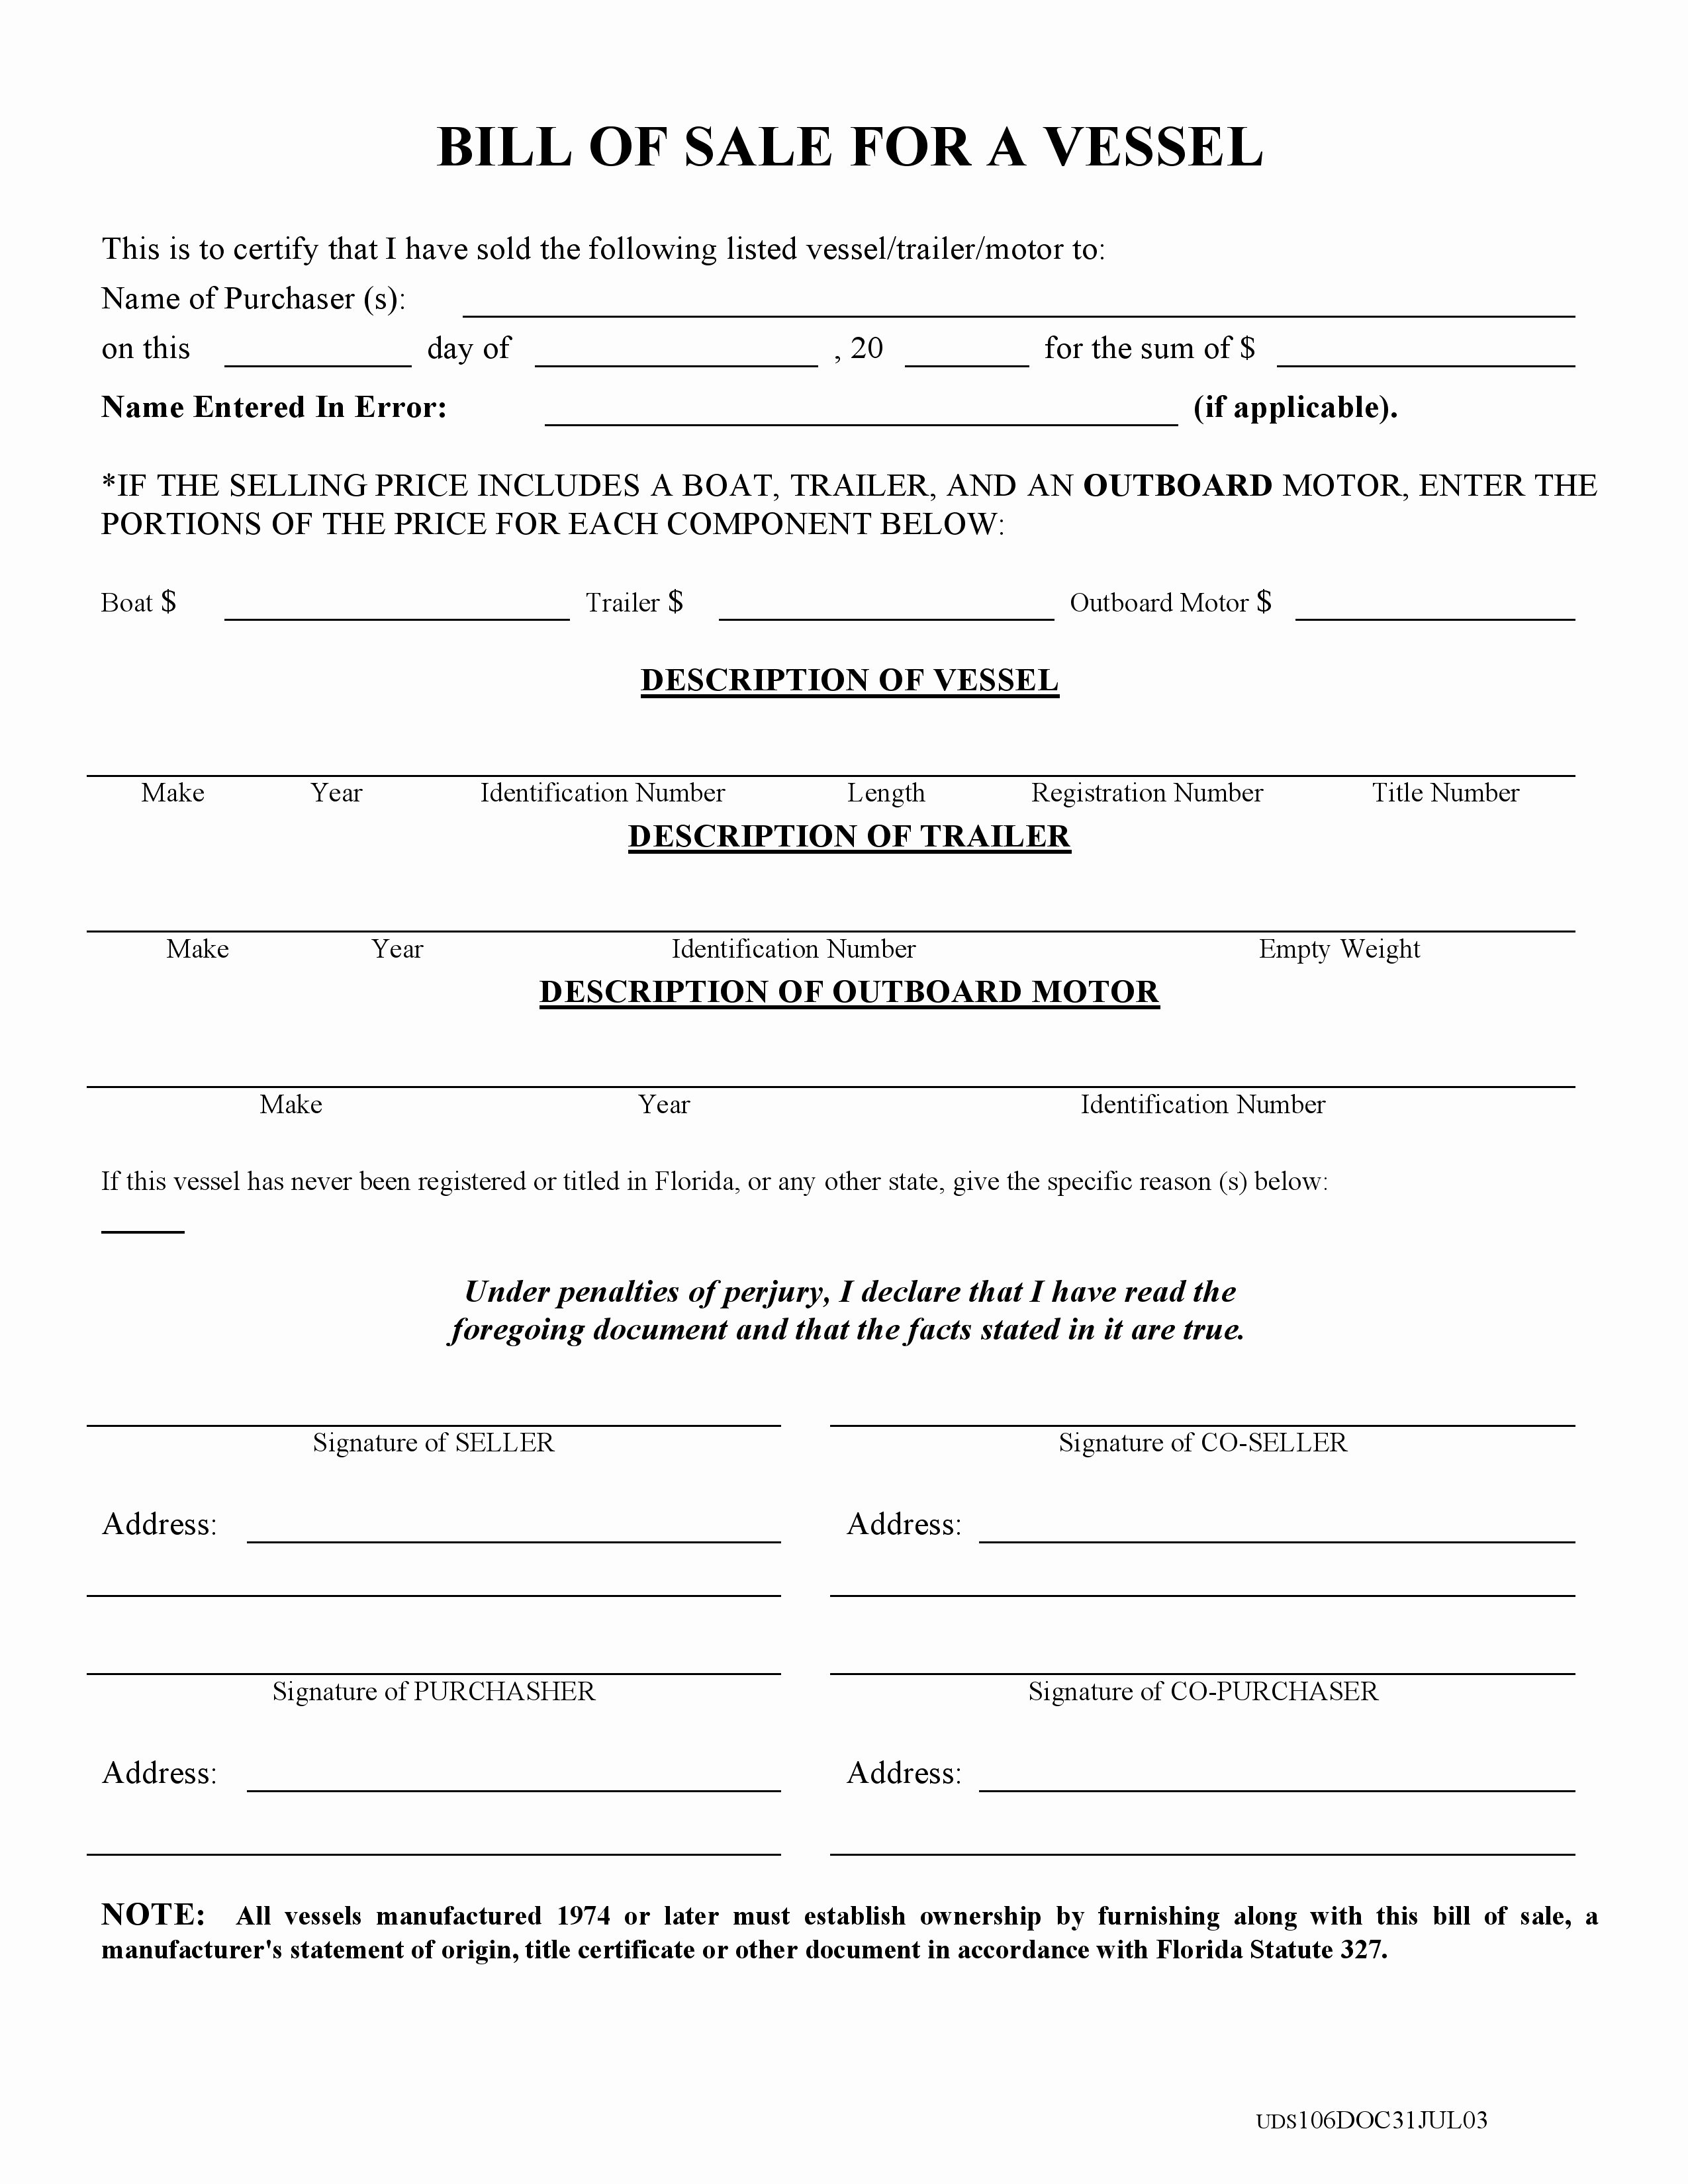 Firearm Bill Of Sale Florida Luxury Free Florida Boat Bill Of Sale form Pdf